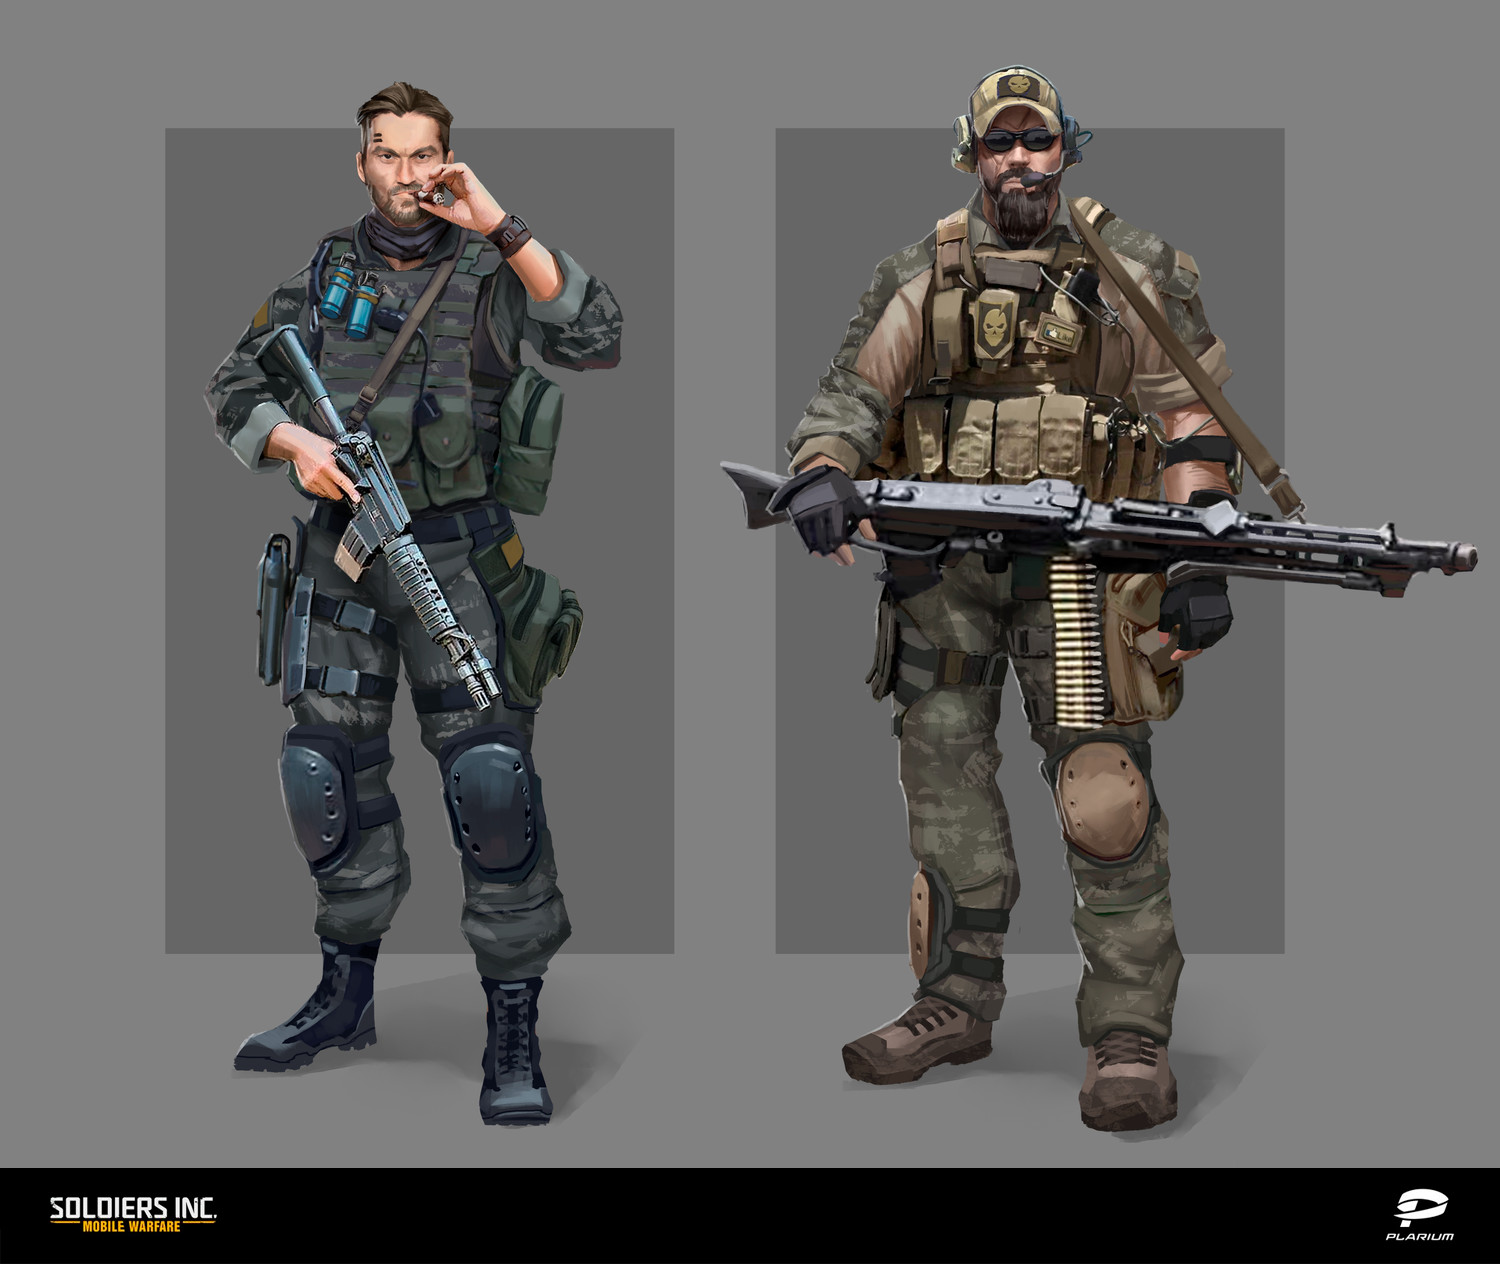 Soldiers Inc. Characters Concept art 1